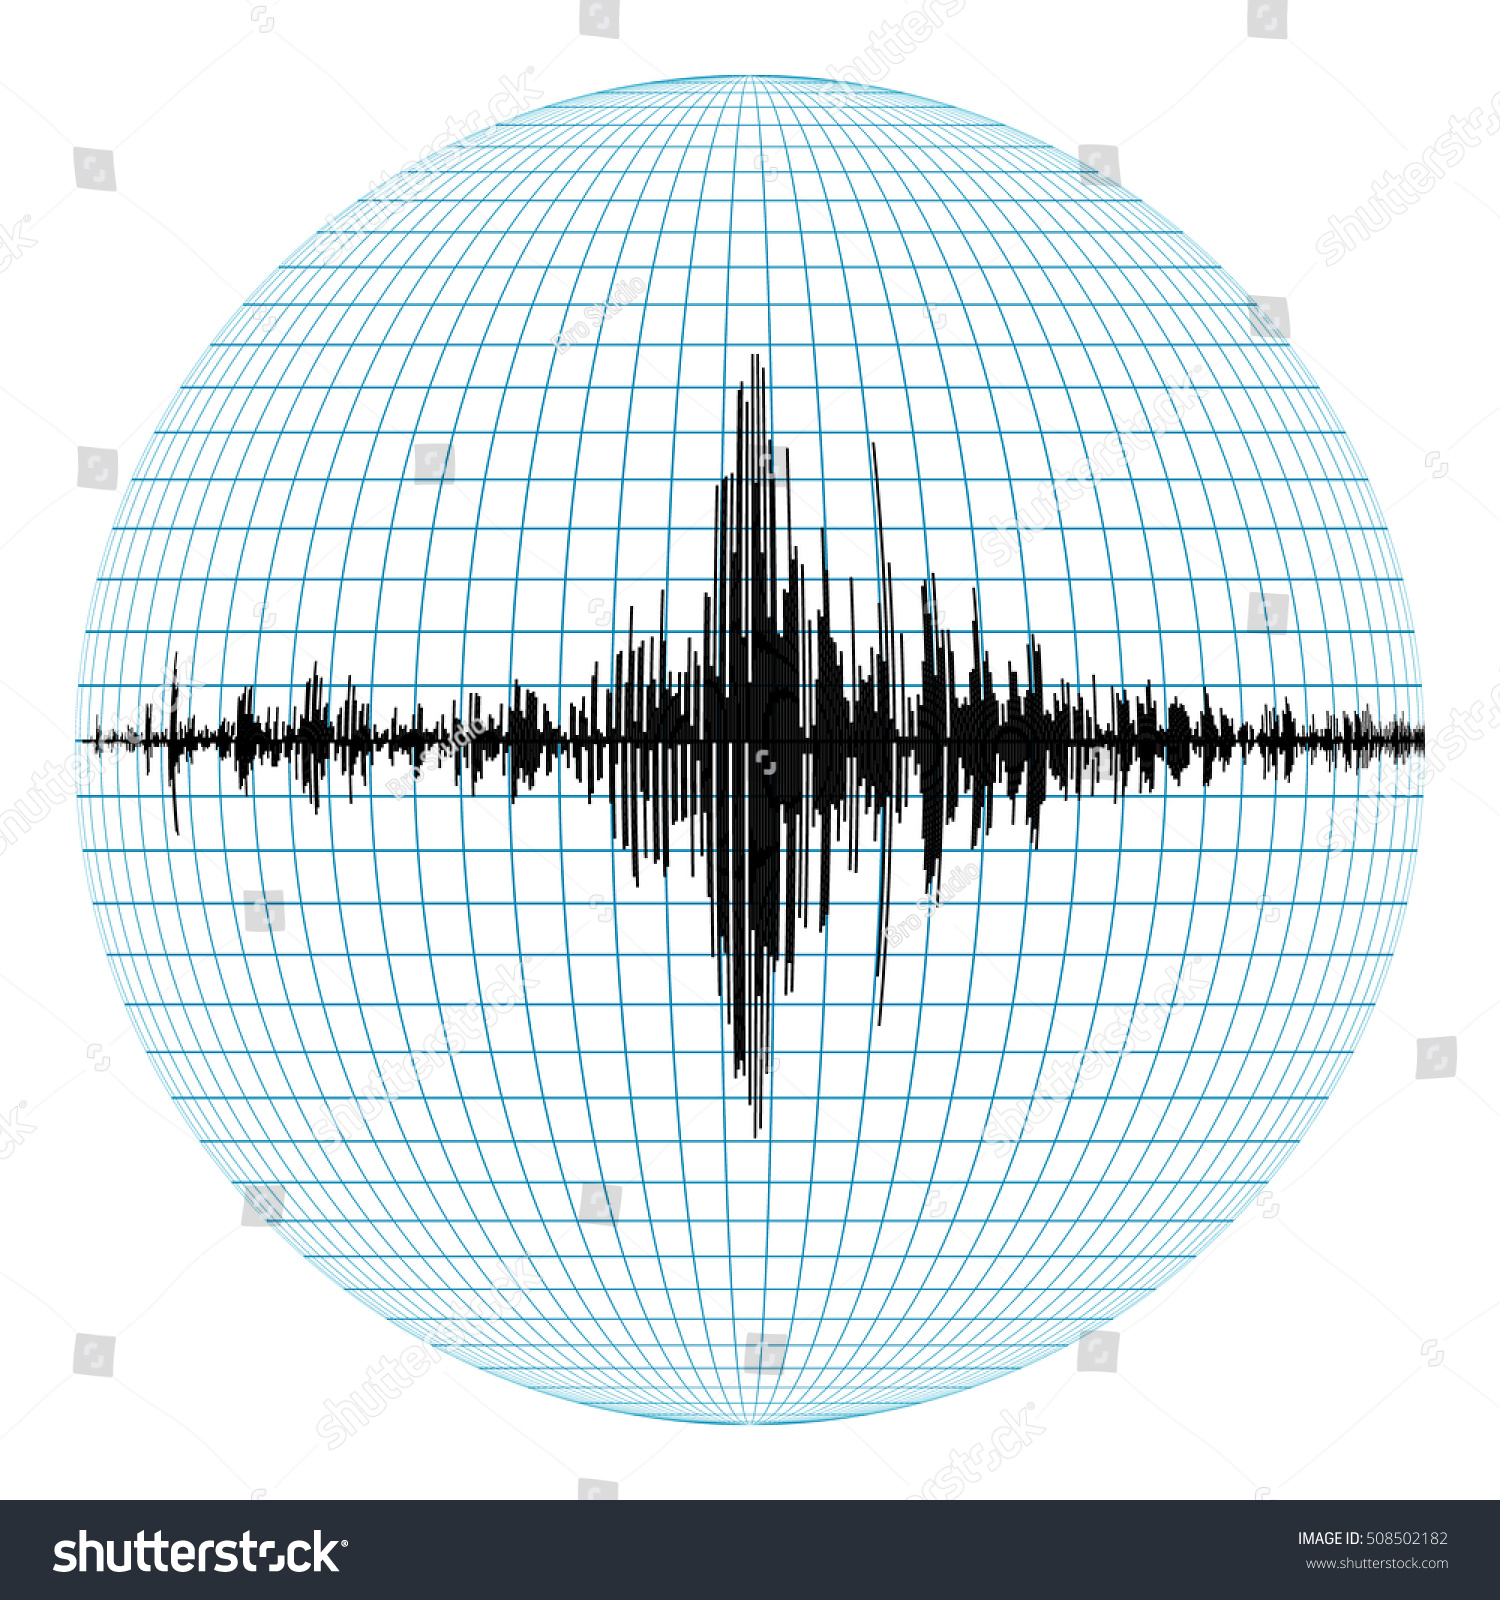 Diagram Earthquakes On Planet Earth Concept Stock Vector